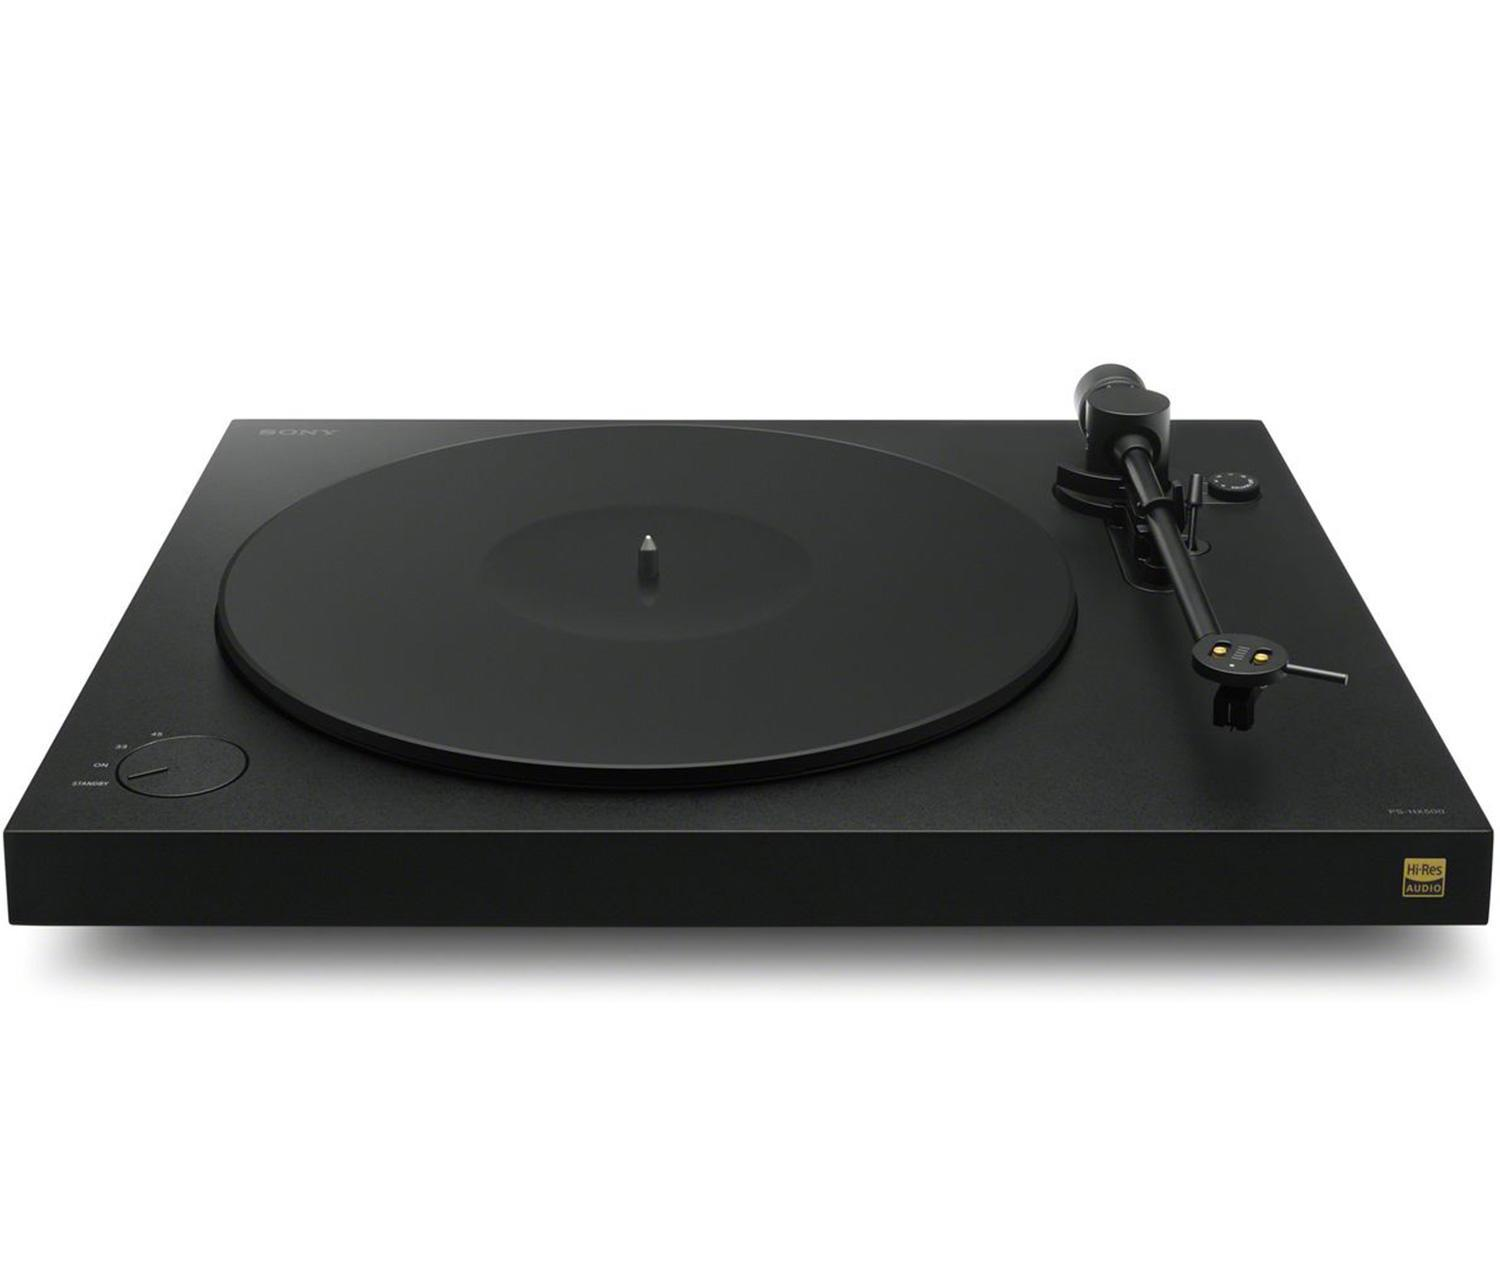 Sony PS-HX500 Turntable with High Resolution Recording